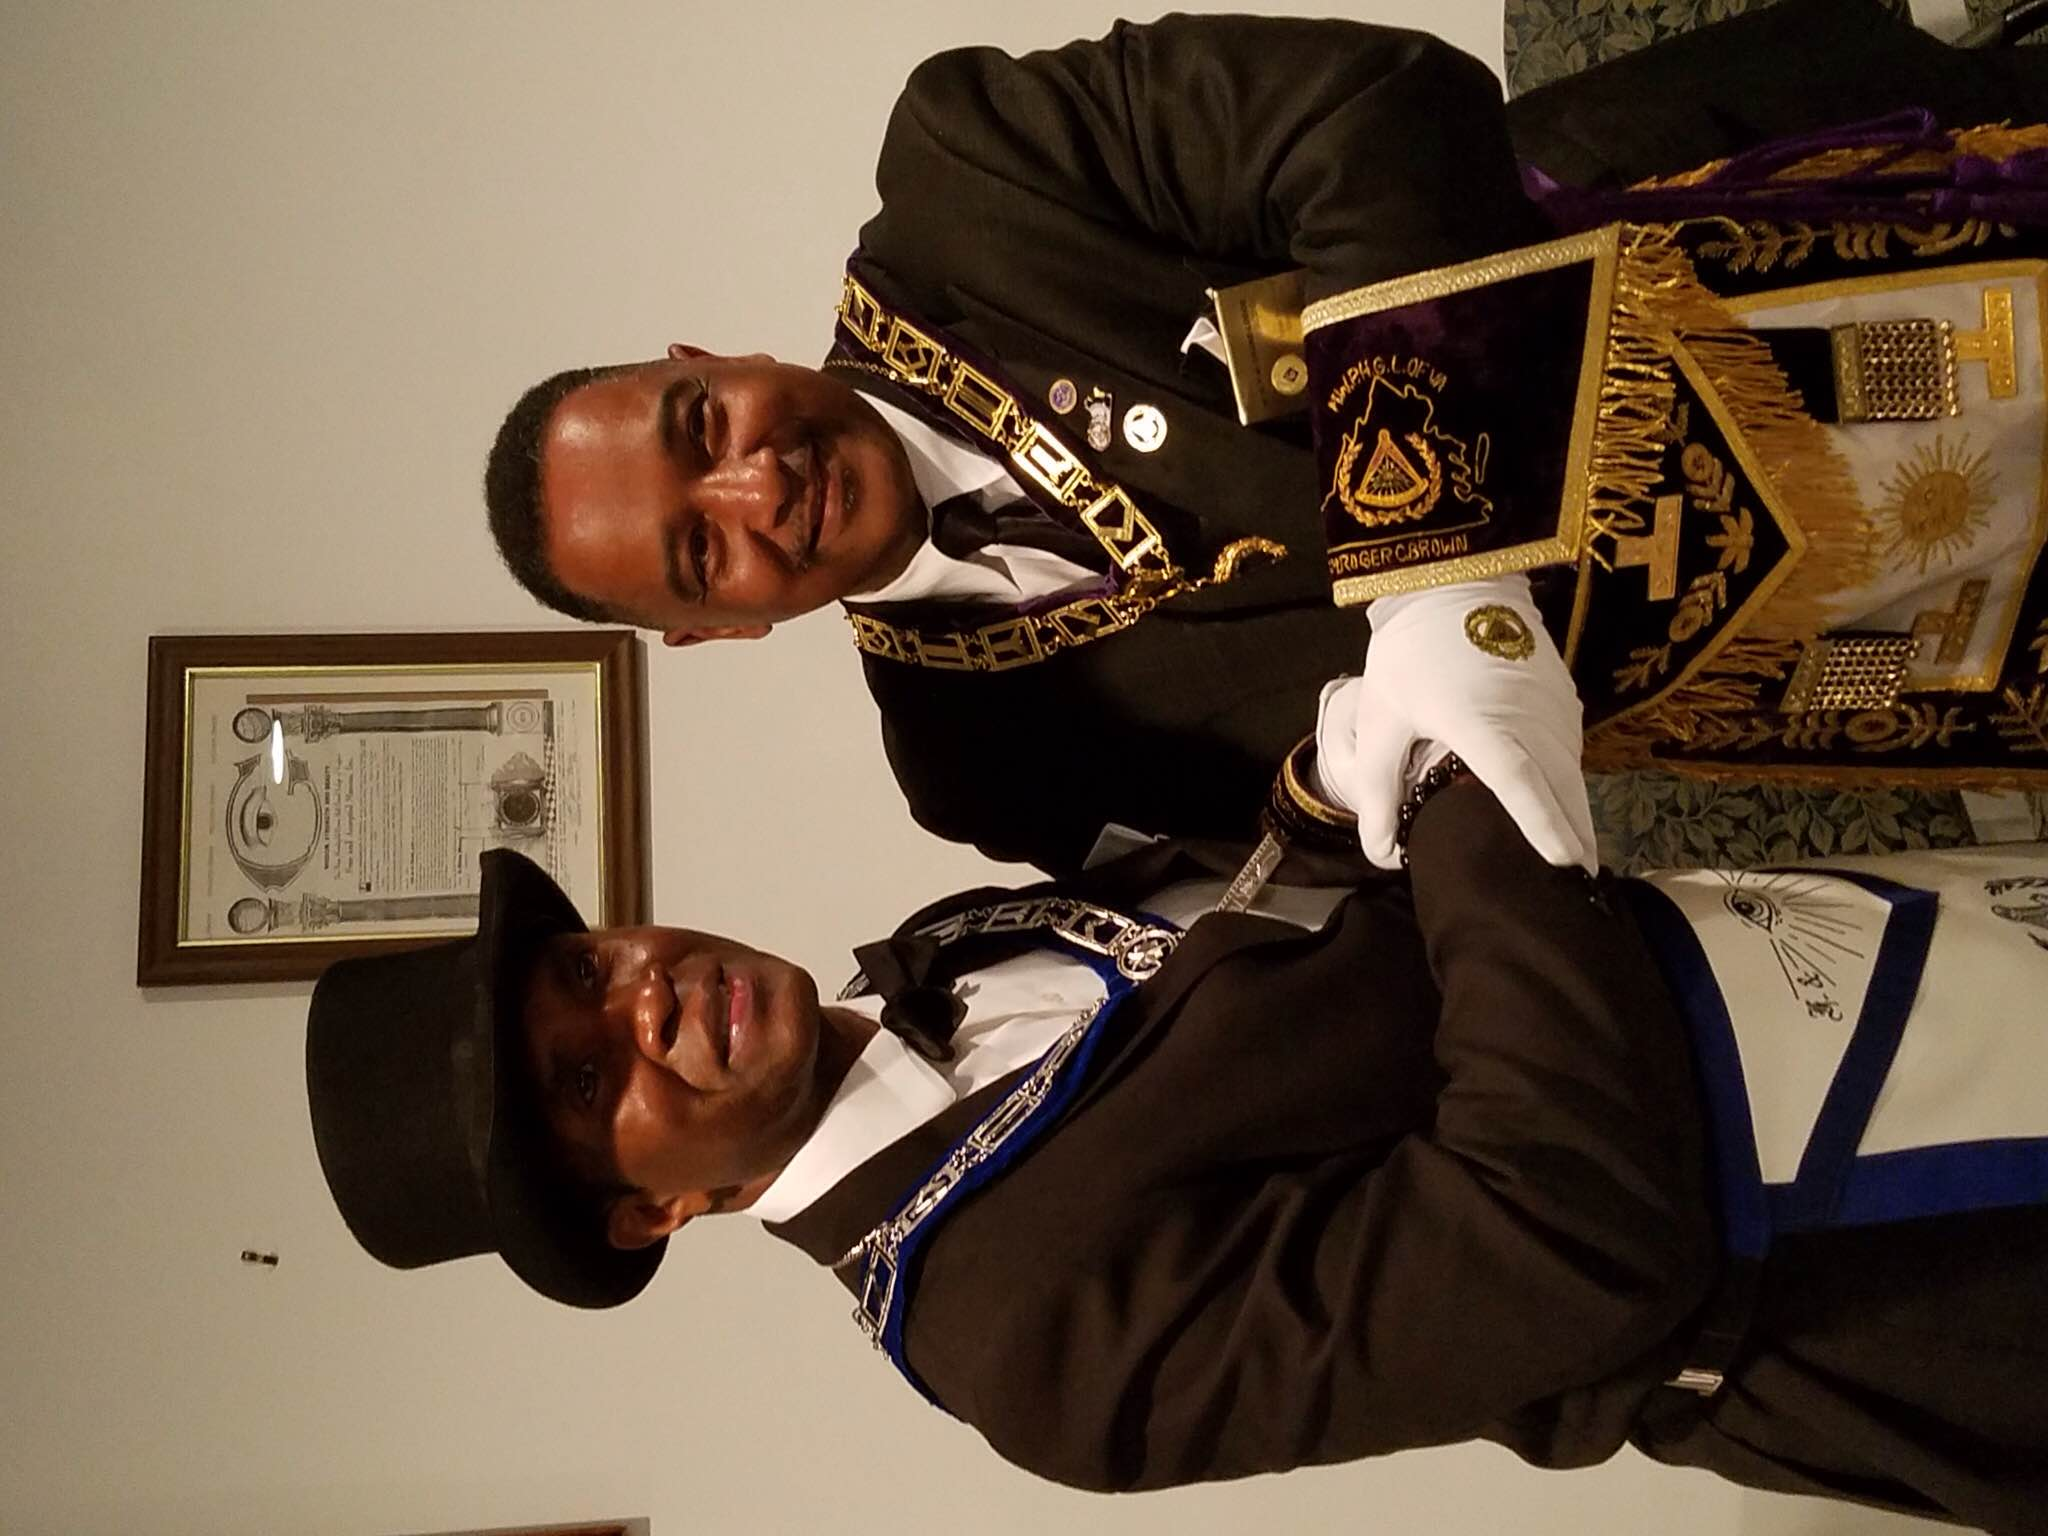 WM LarryTJohnson installed by WGM RogerCBrown